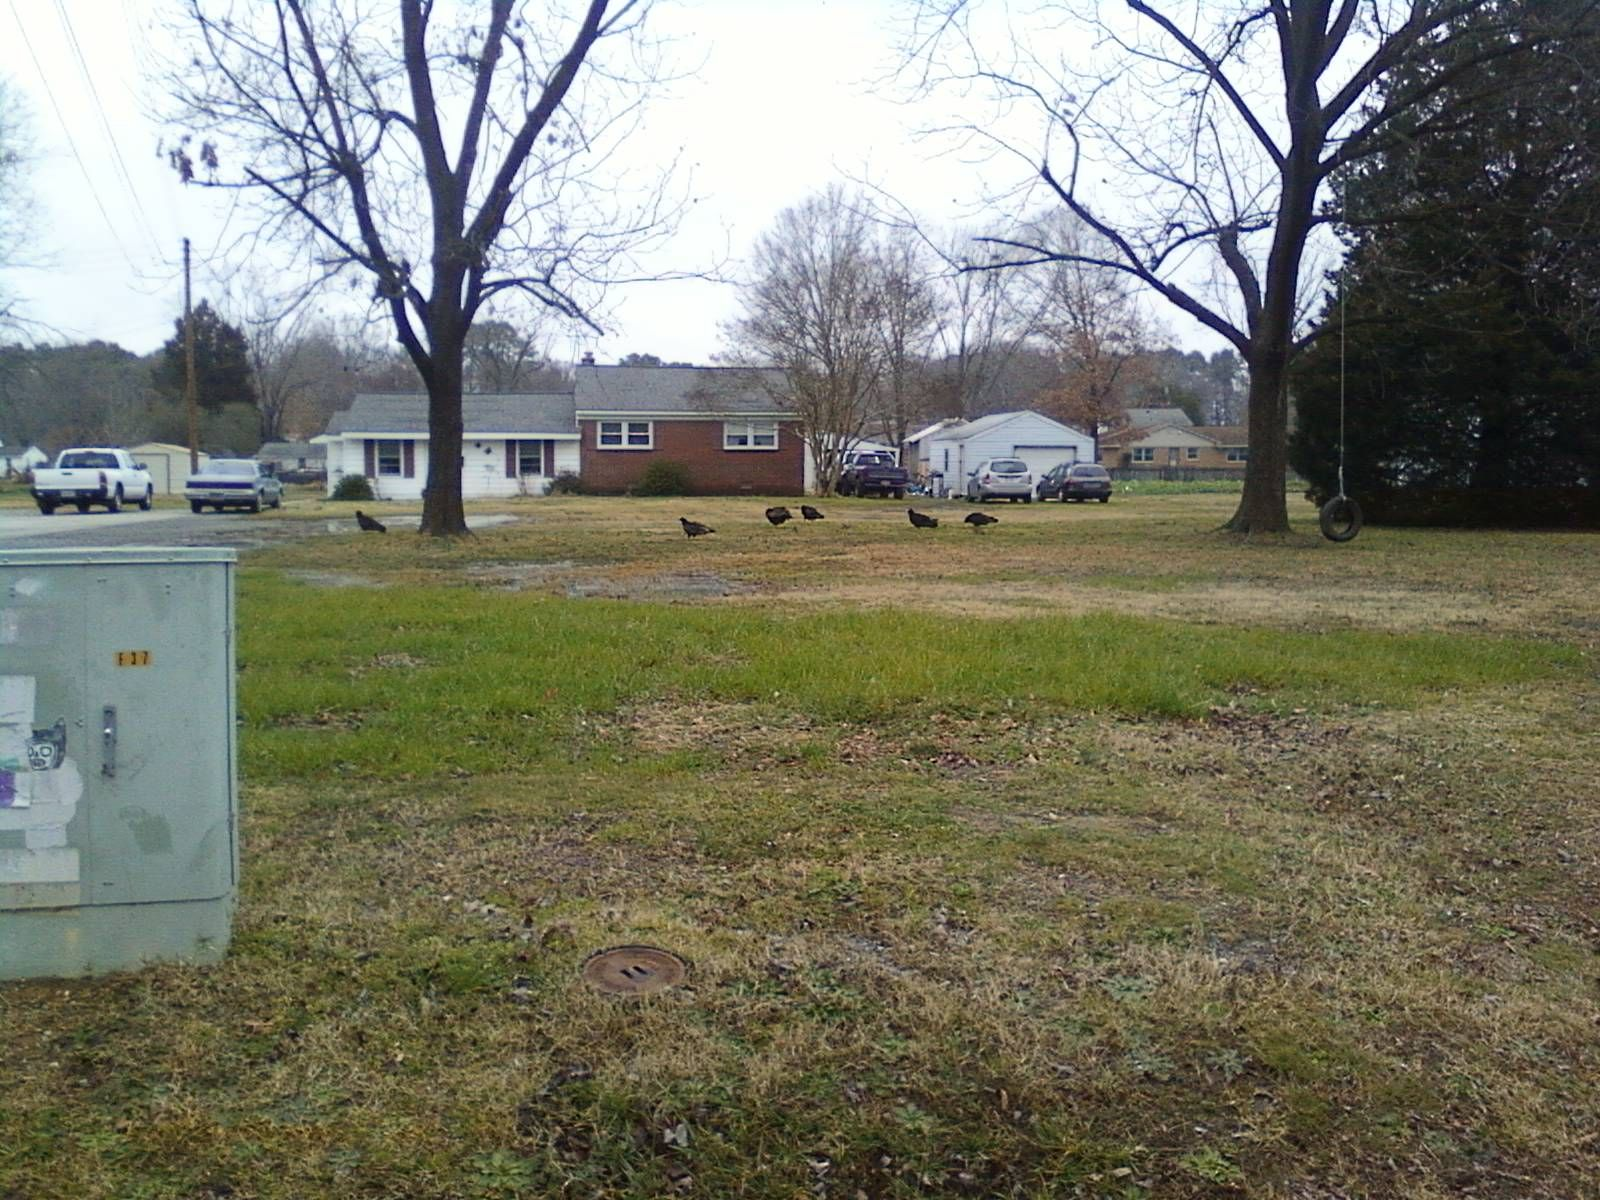 They are a little hard to see (I only had my very basic cell phone to snap the picture), but those are vultures in my neighbor's front yard.  They are so big!